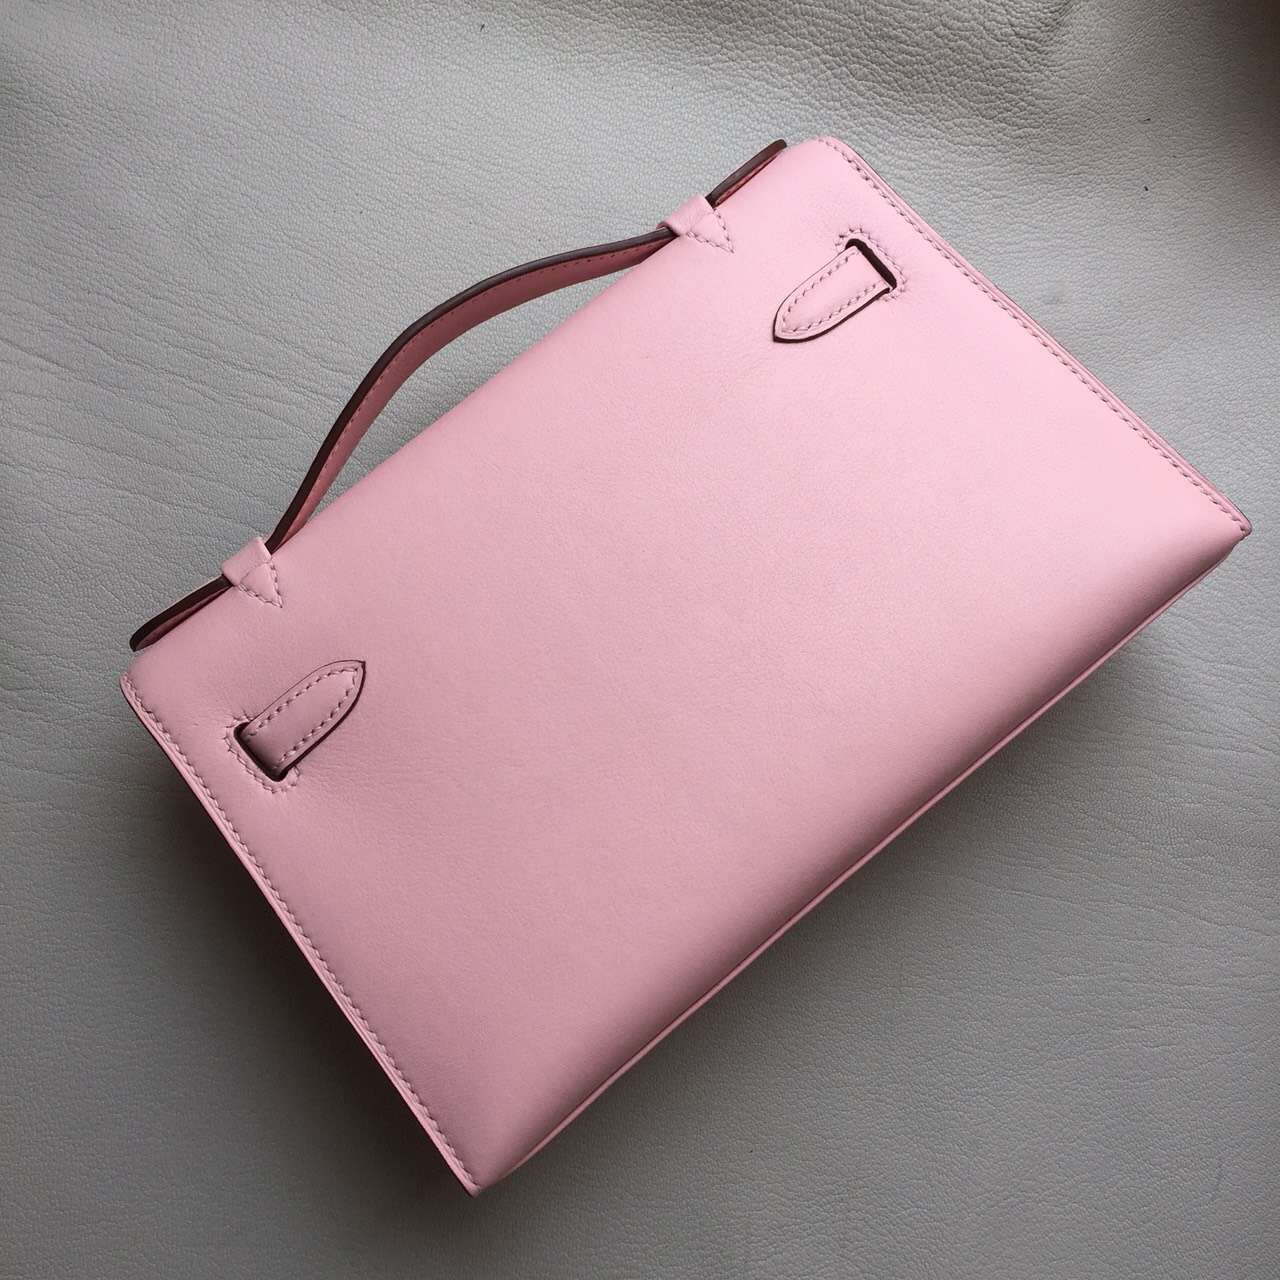 Hot Sale Hermes Swift Leather Mini Kelly Clutch Bag22cm in New Pink